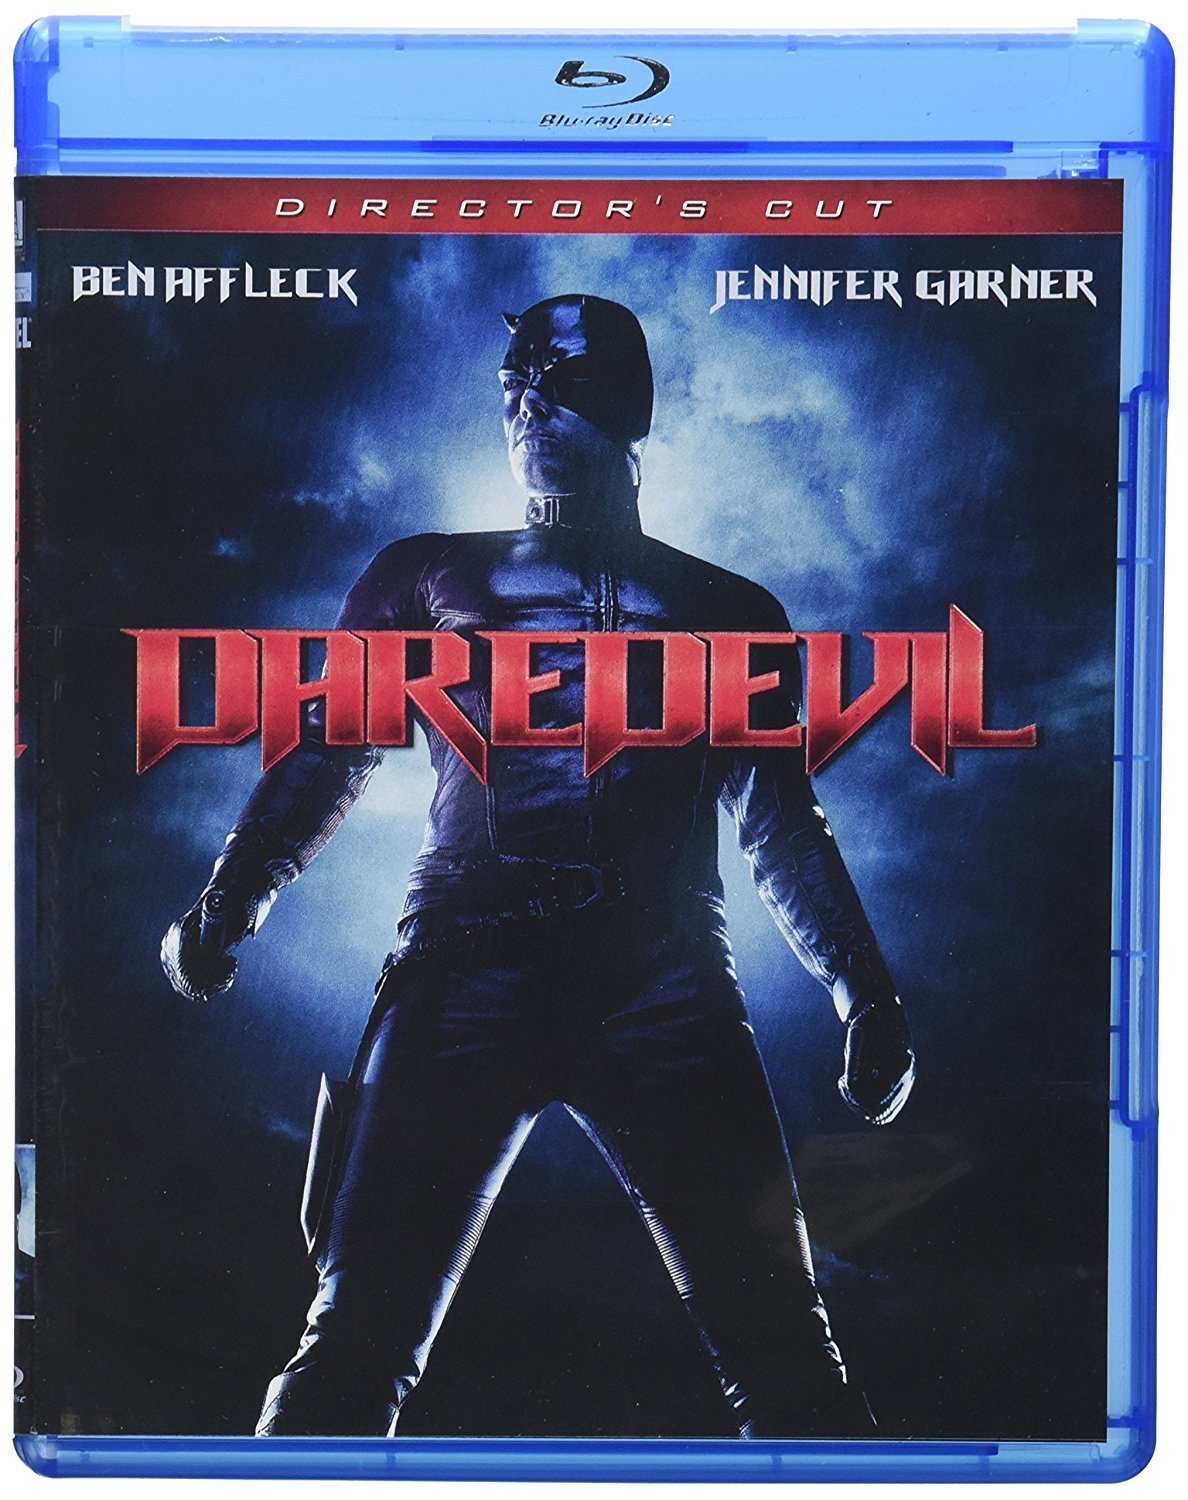 Daredevil Director's Cut (Blu-ray)